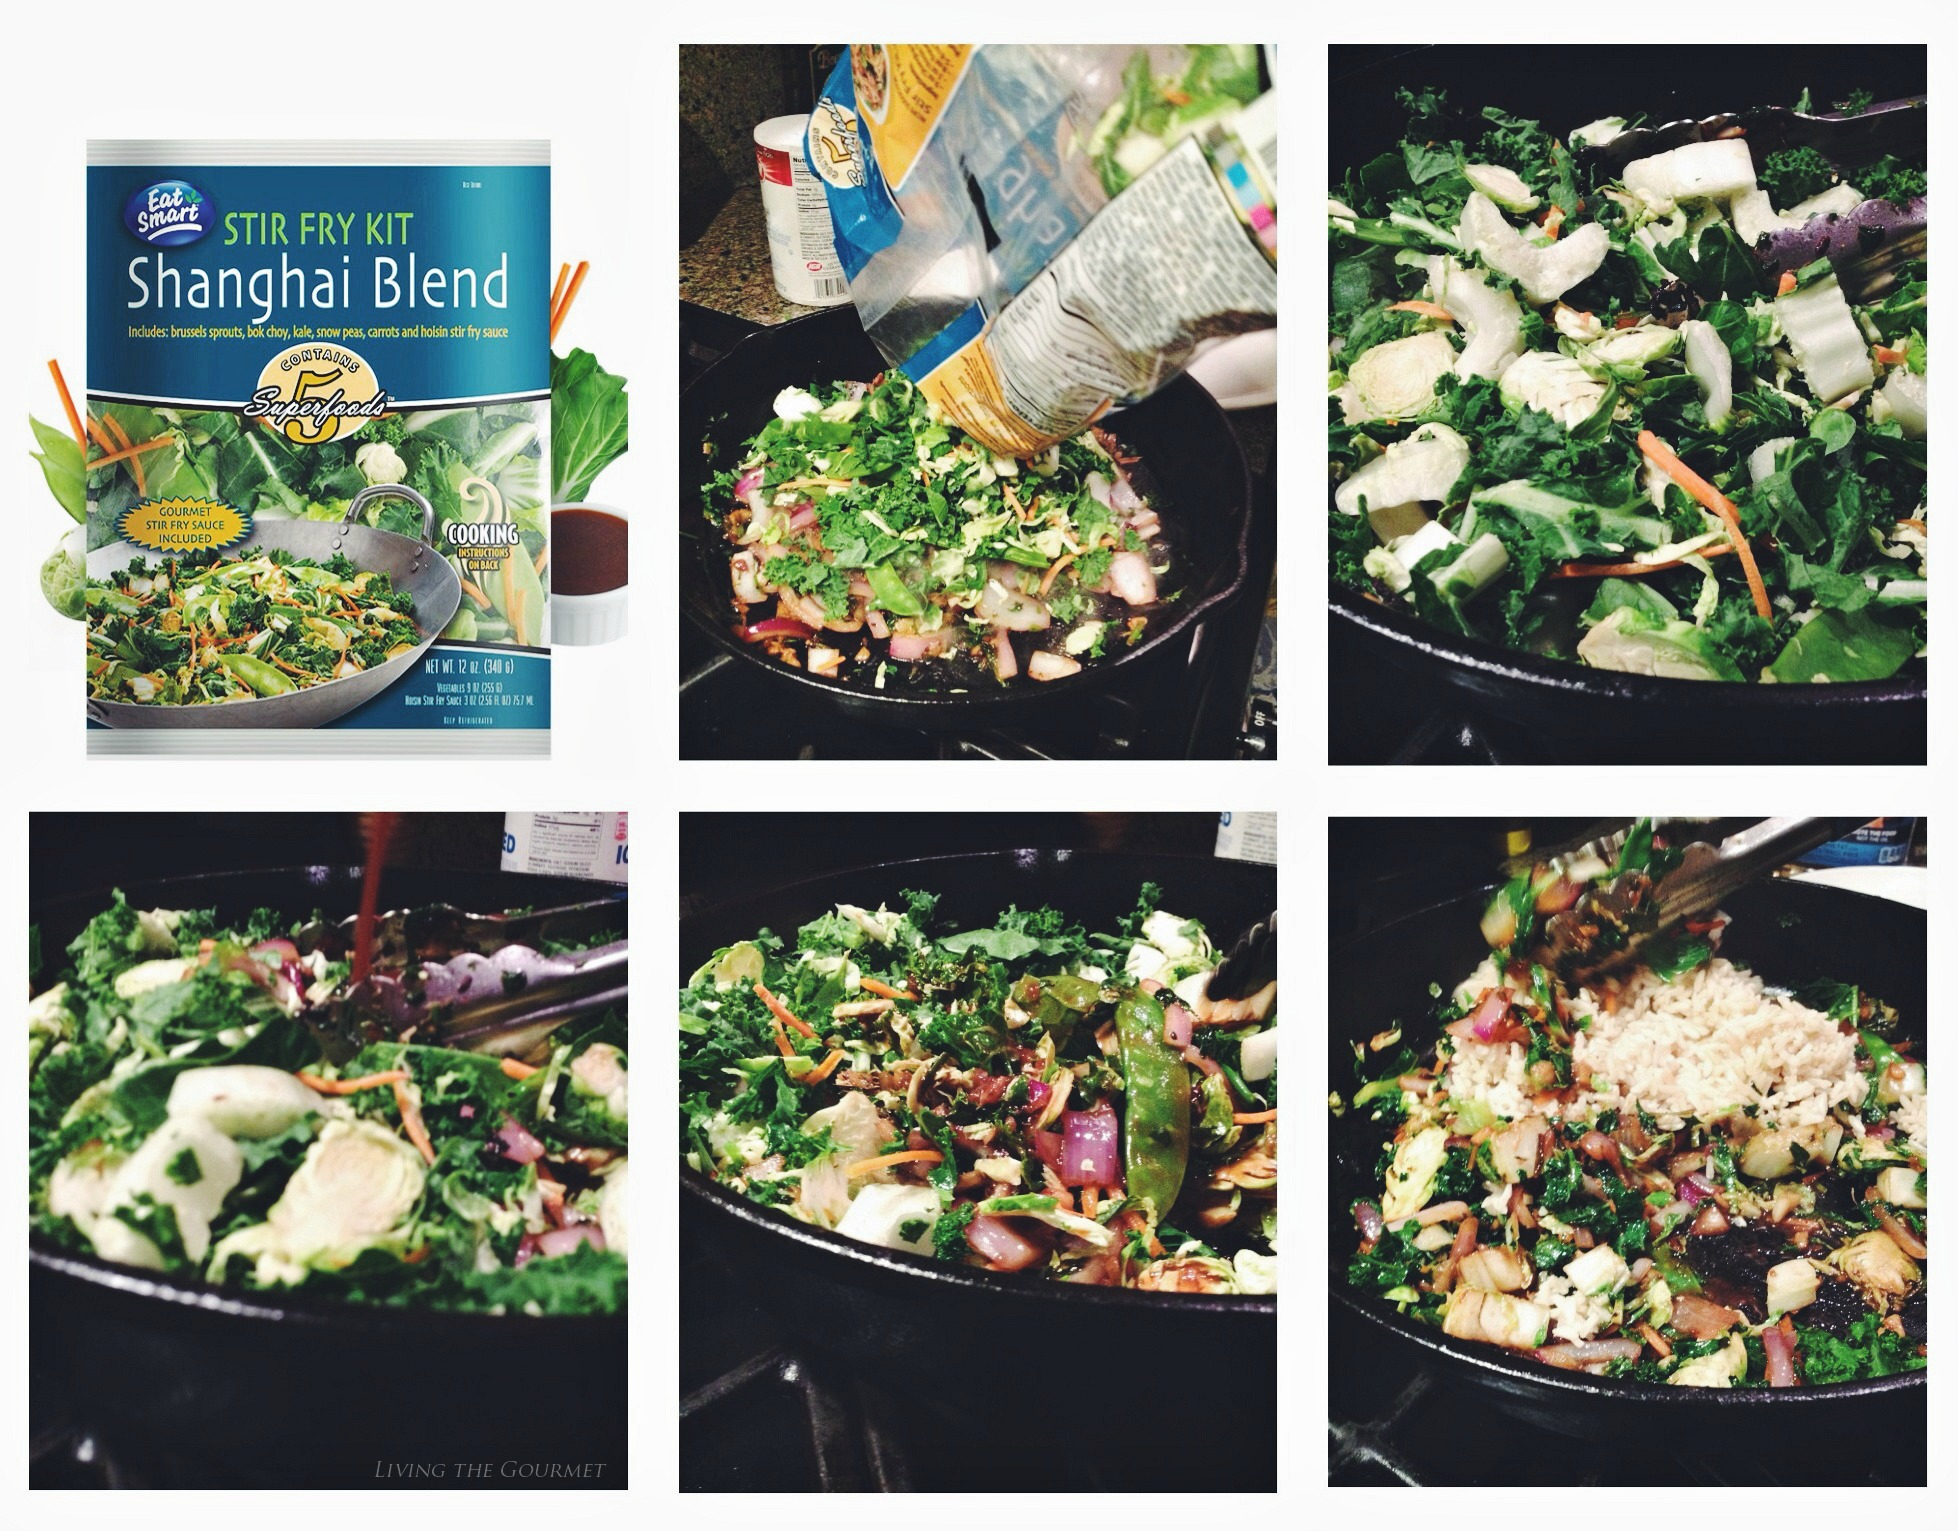 Living the Gourmet: Eat Smart®: Salad Kits Shanghai Blend Stir Fry Kit